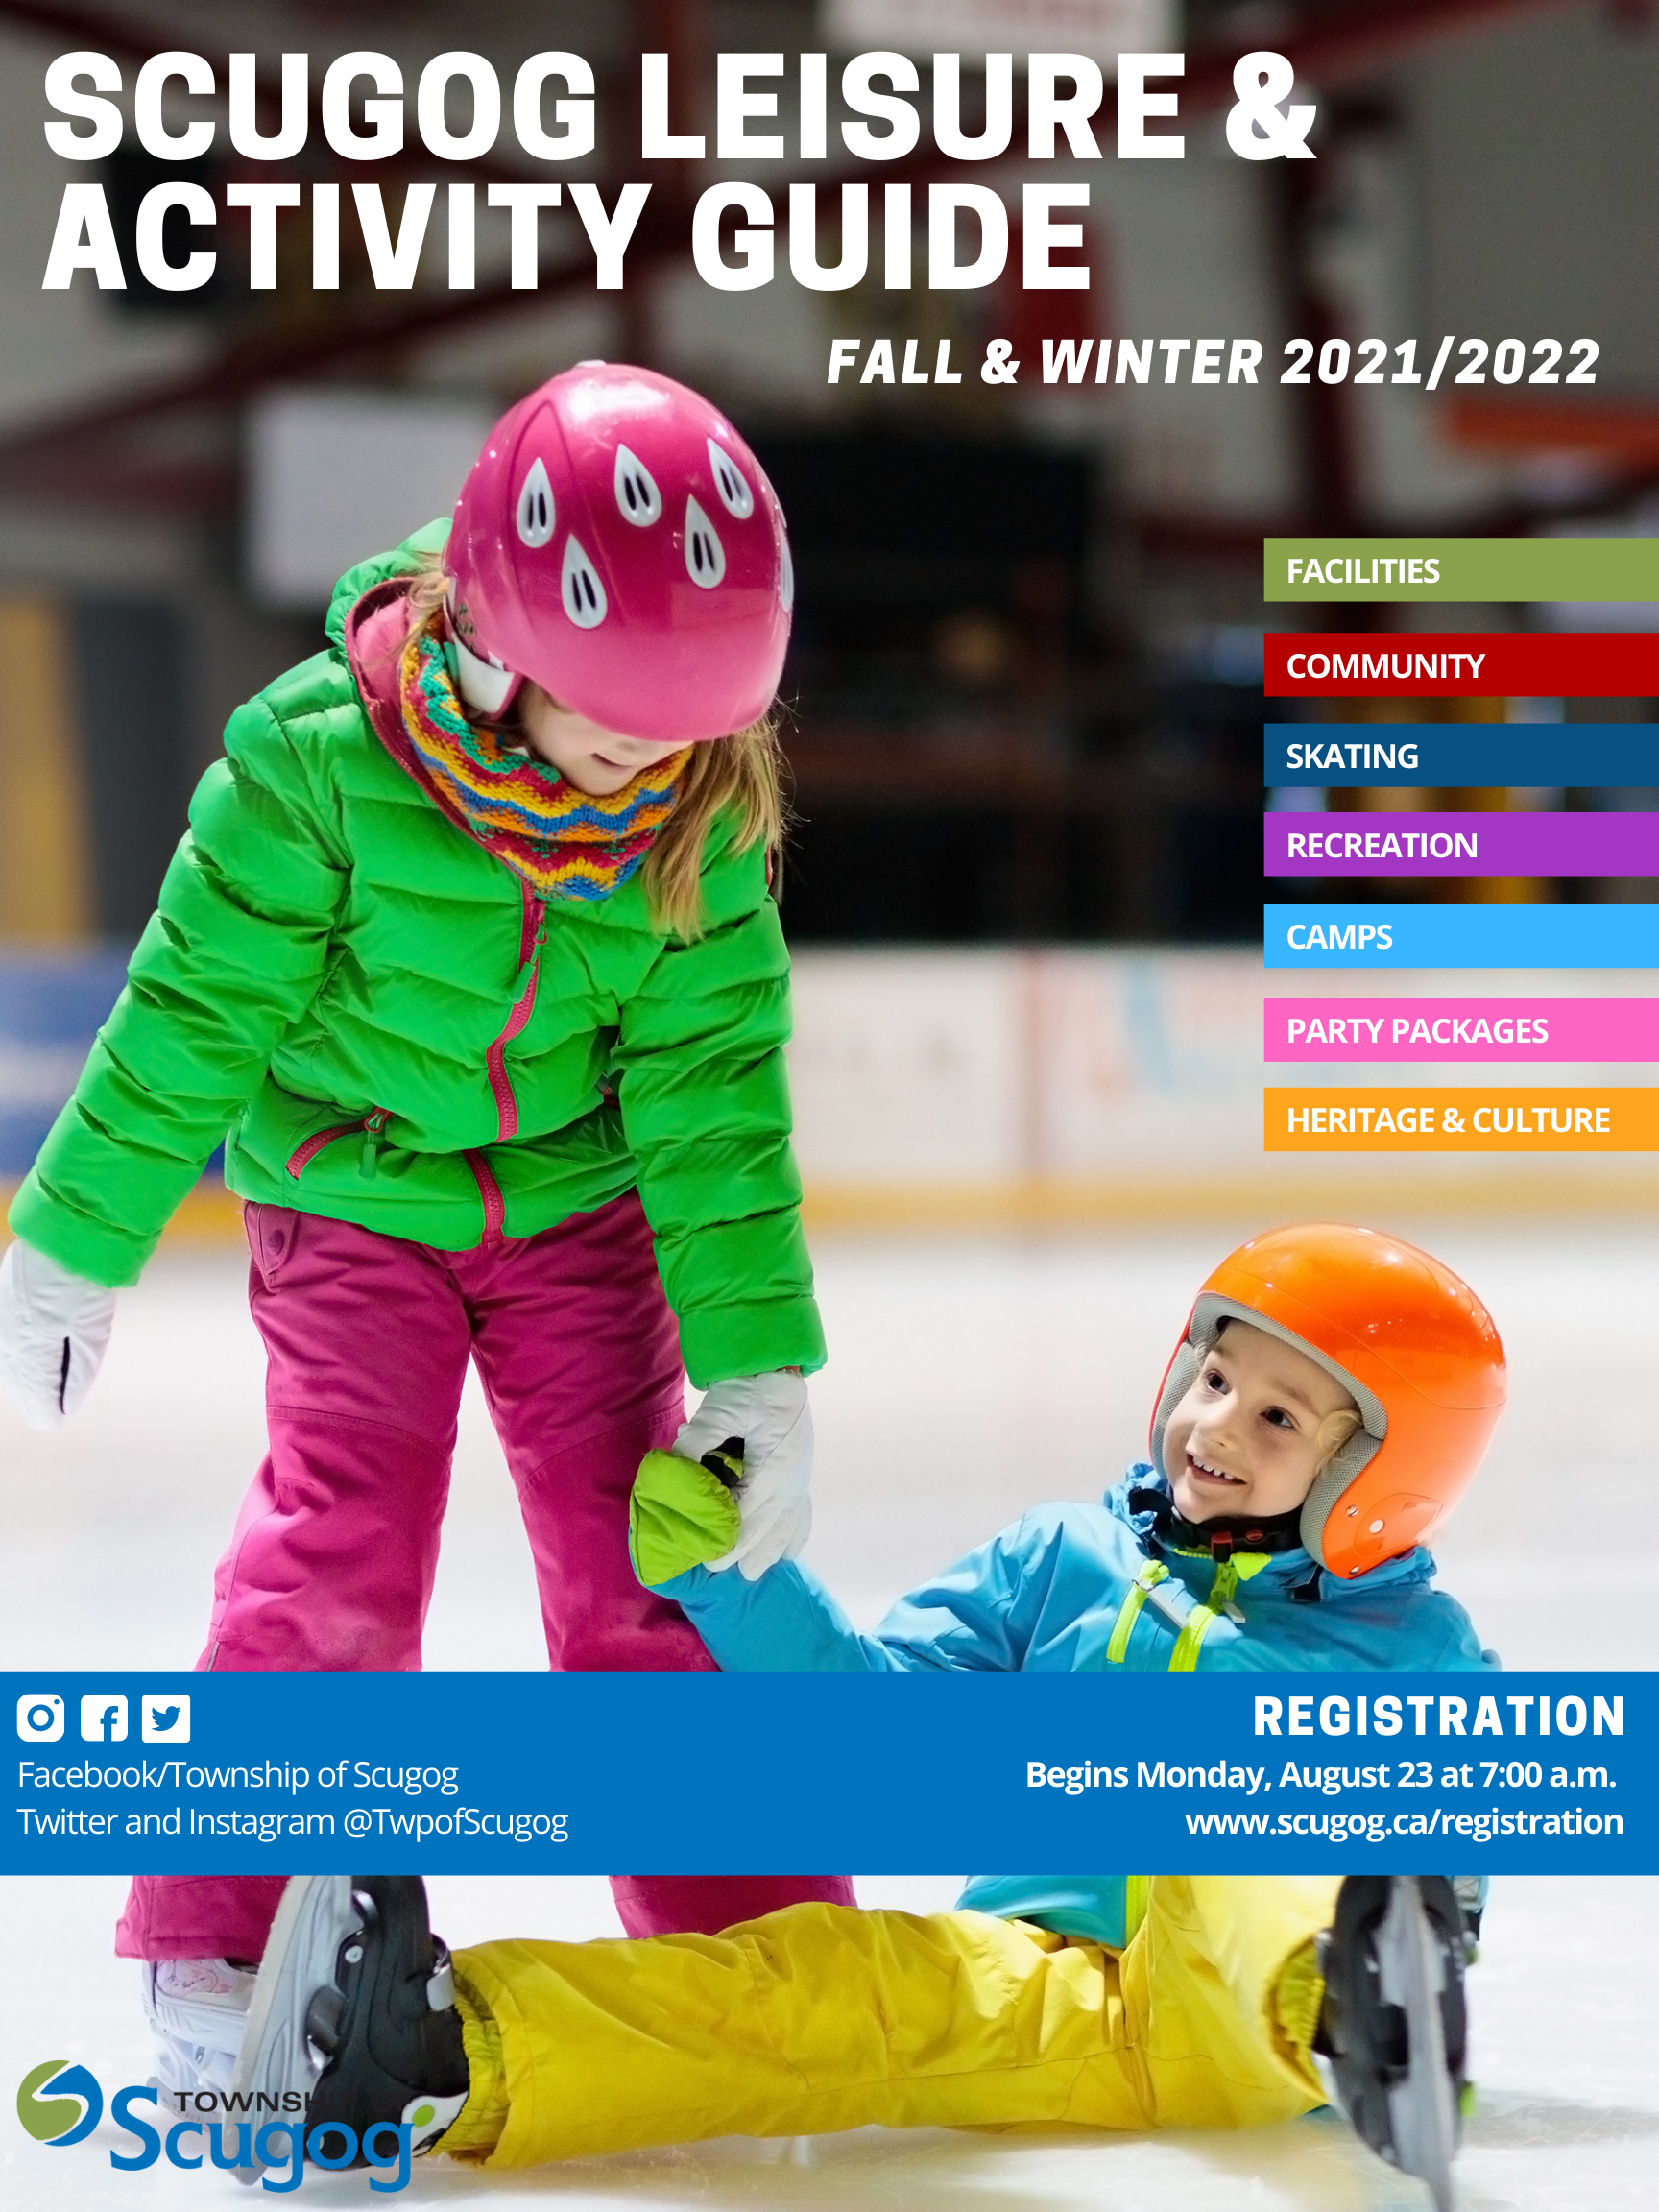 Image of the 2021 Fall/Winter Leisure Guide